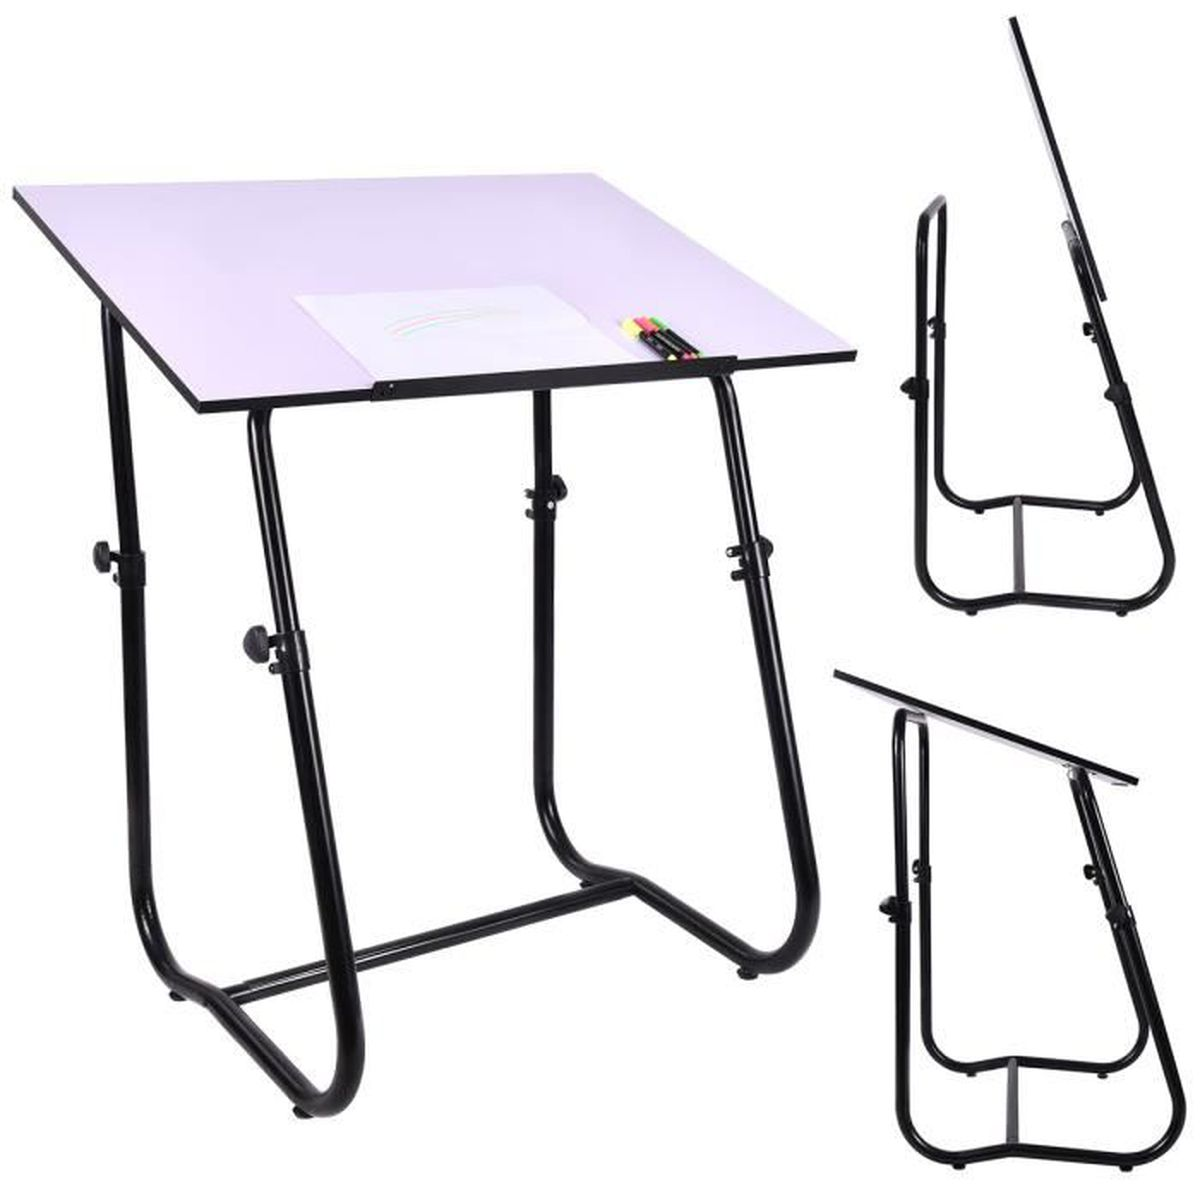 Table dessin inclinable table de bureau multifonctionnel for Table a dessin